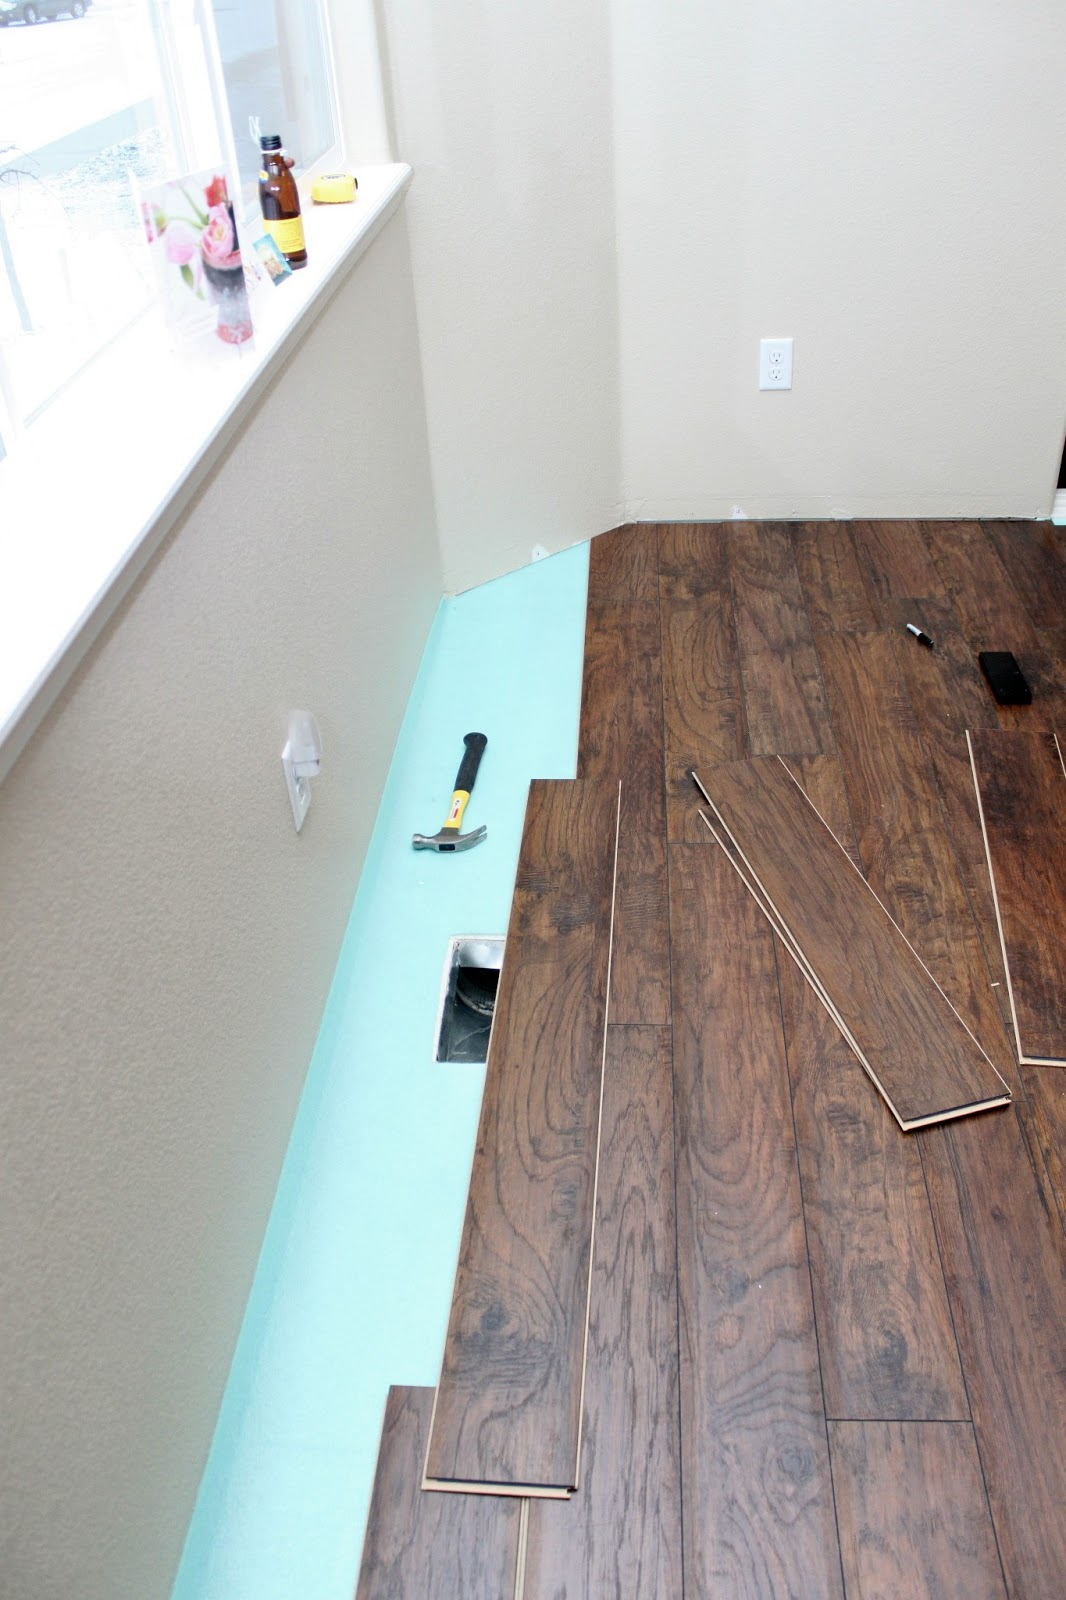 Our Modern Homestead: DIY: Laminate wood flooring project!